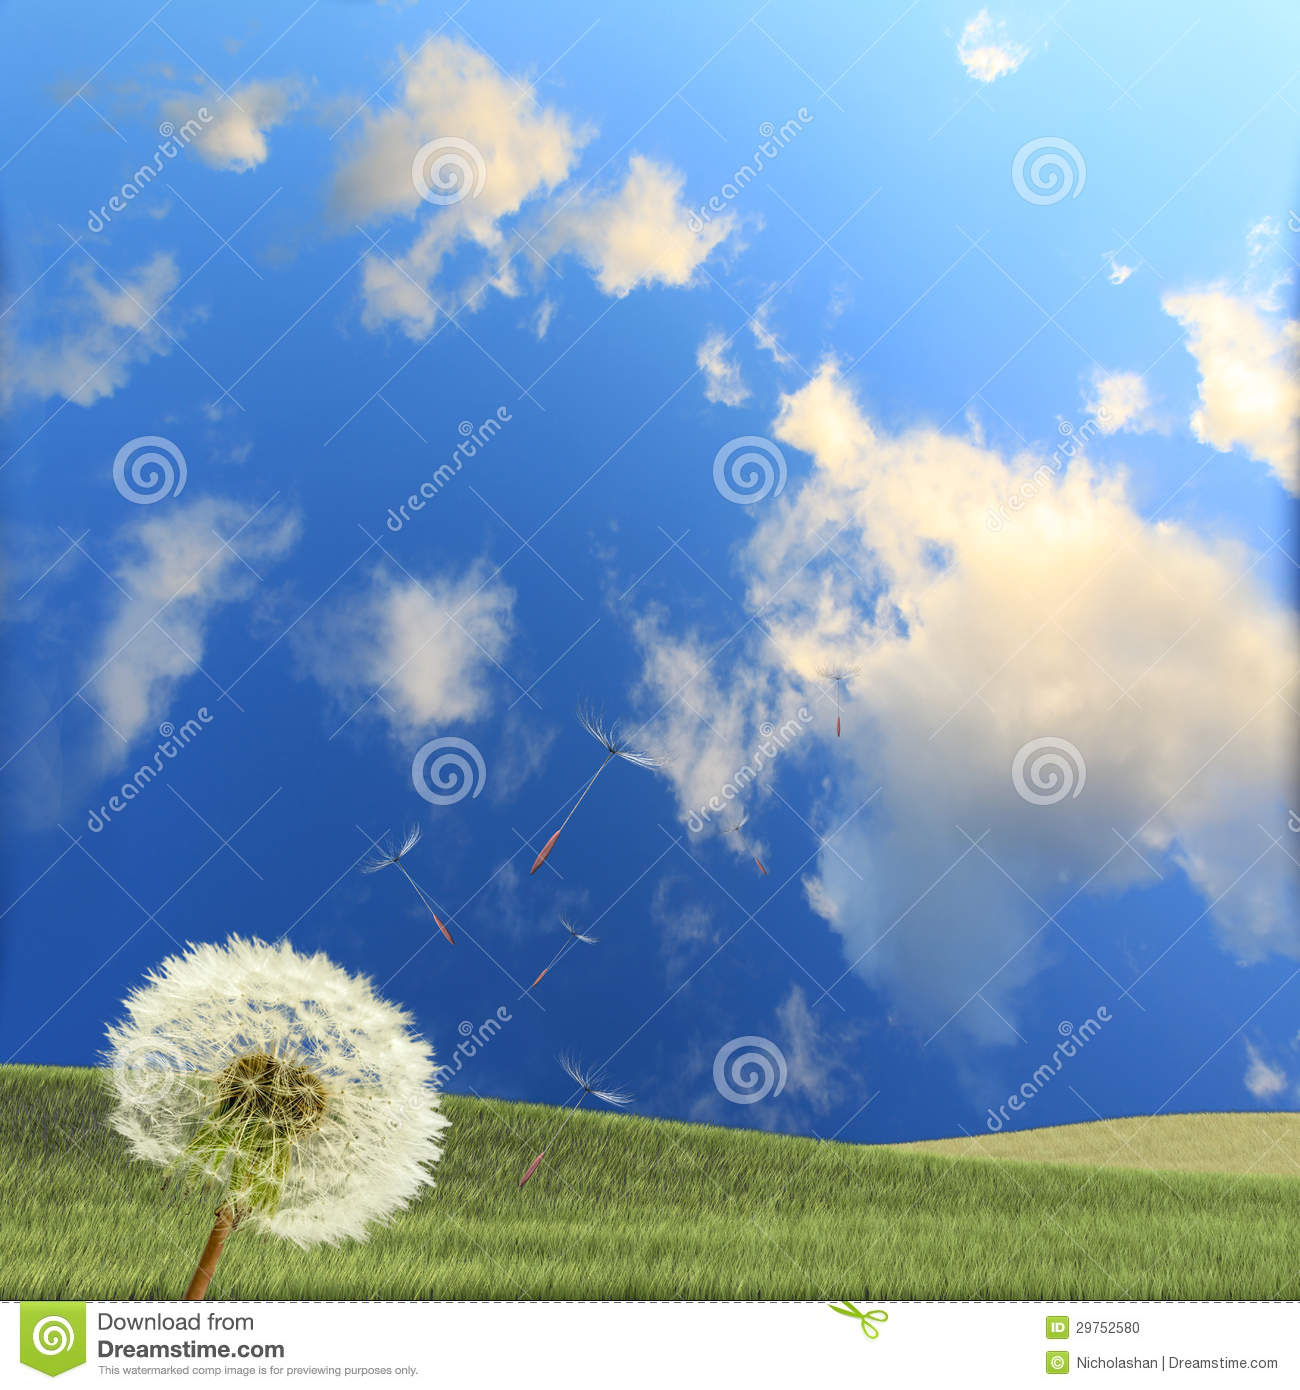 Dandelion Stock Photo. Image Of Overblown, Drawing, Green